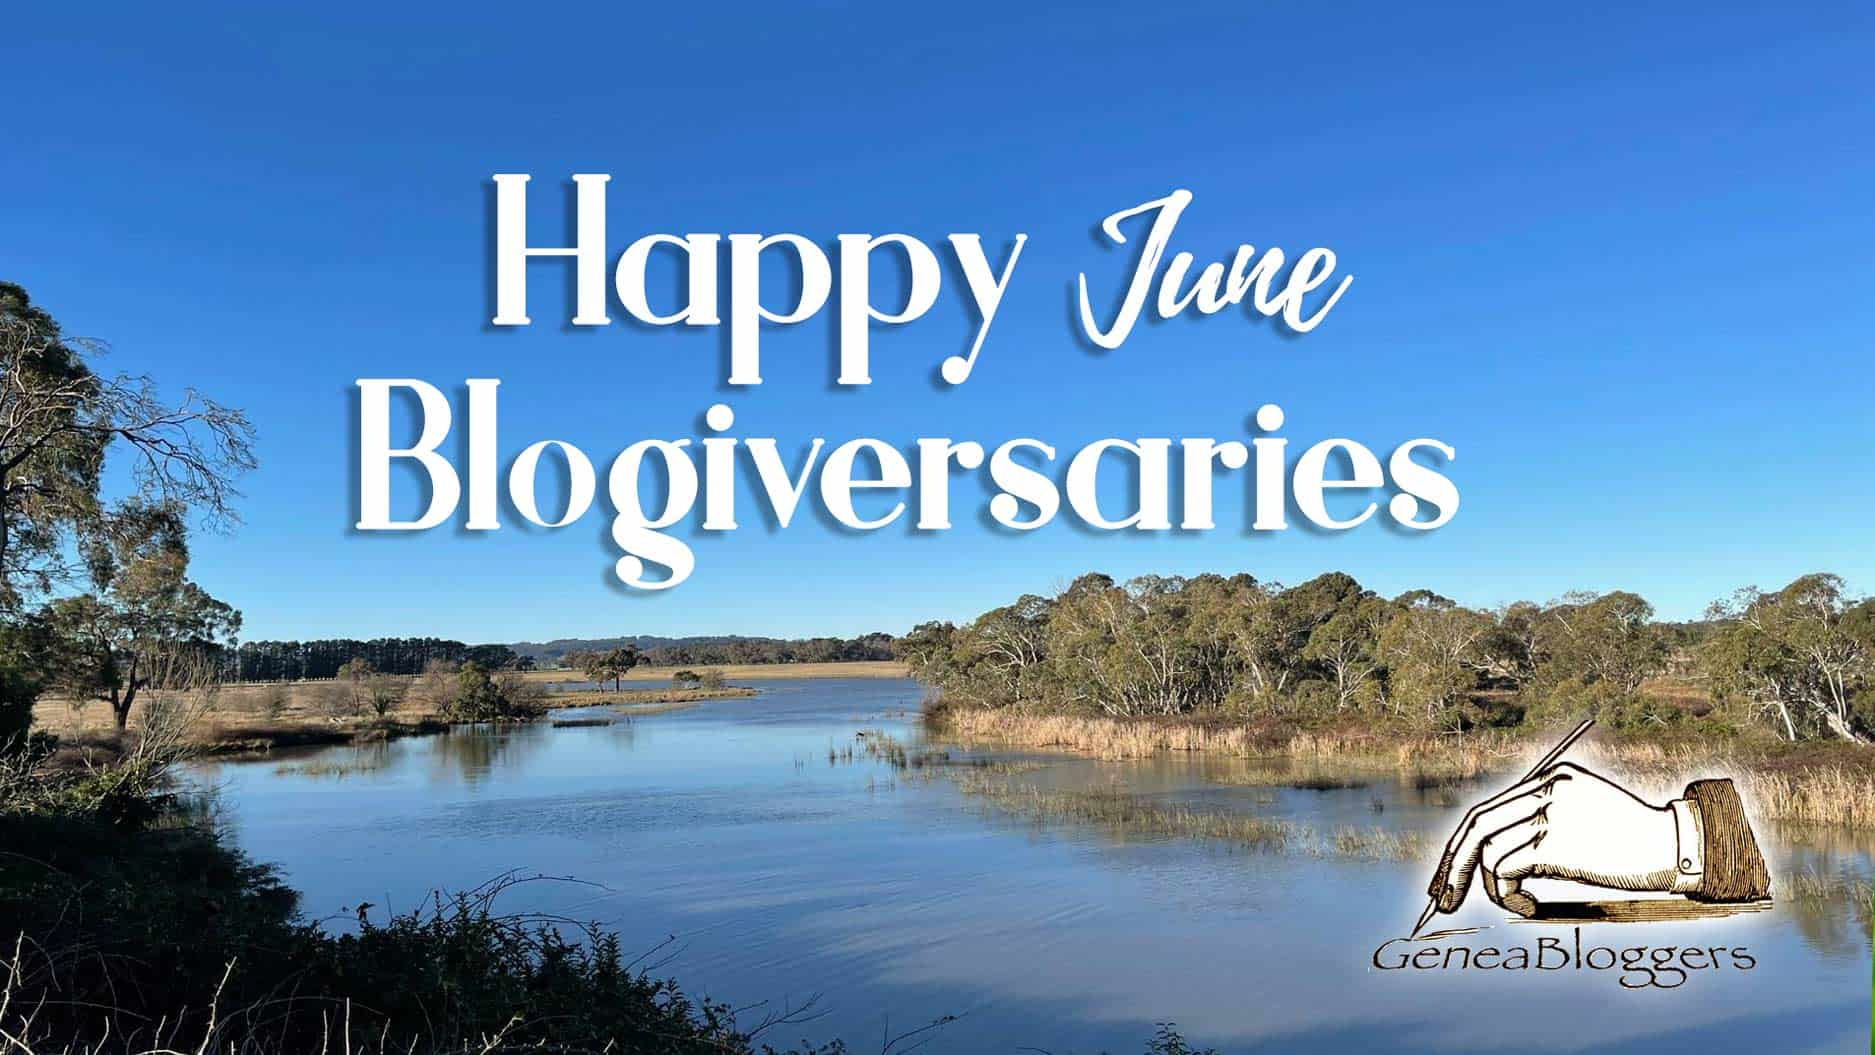 Happy Blogiversary June 2021 from Geneabloggers